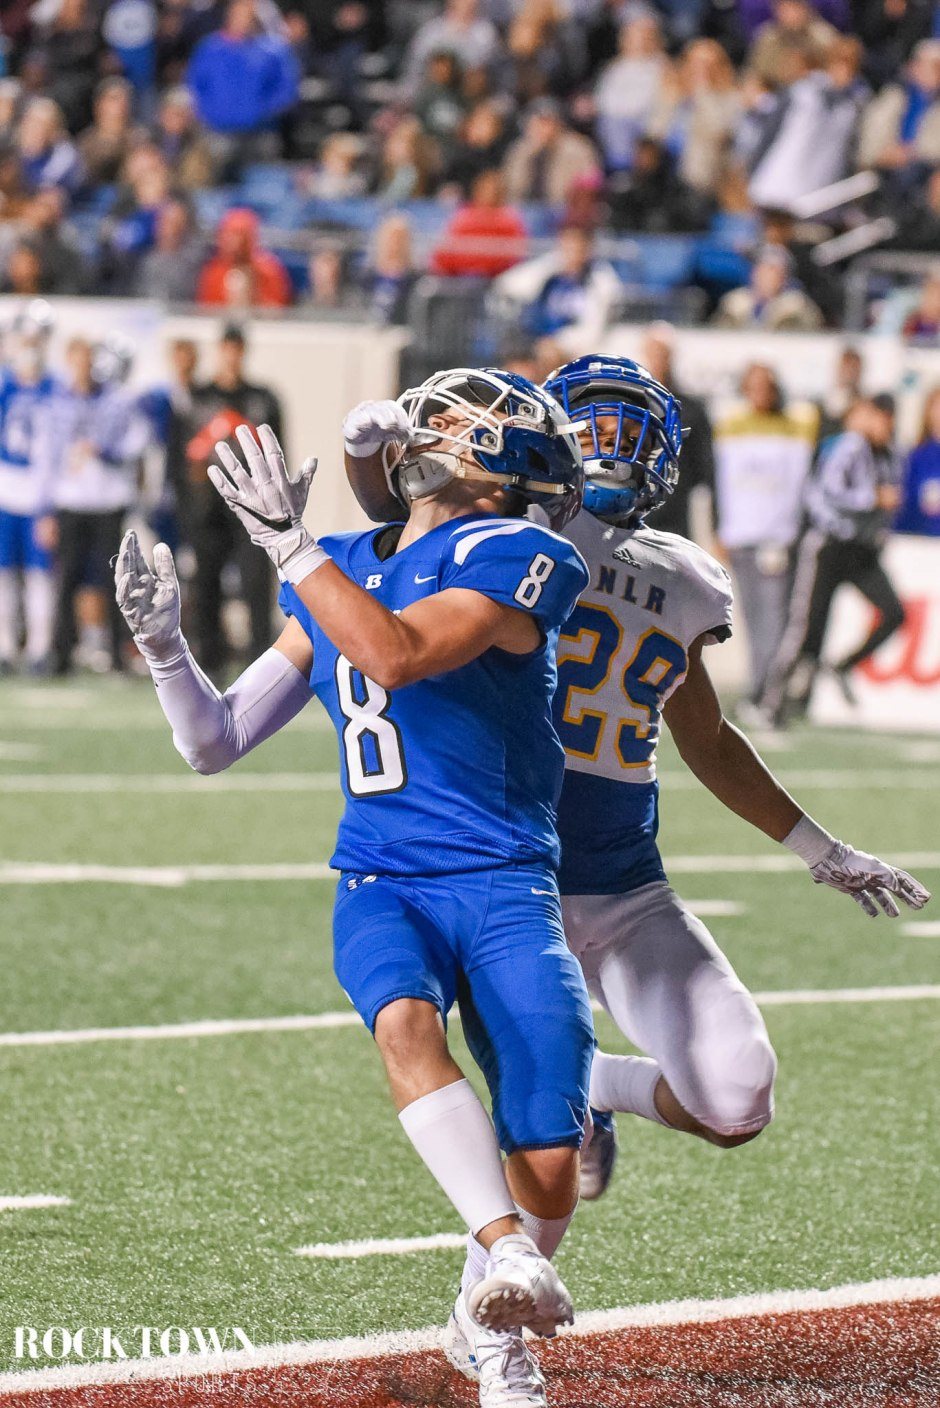 bryant_nlr_state19_-89